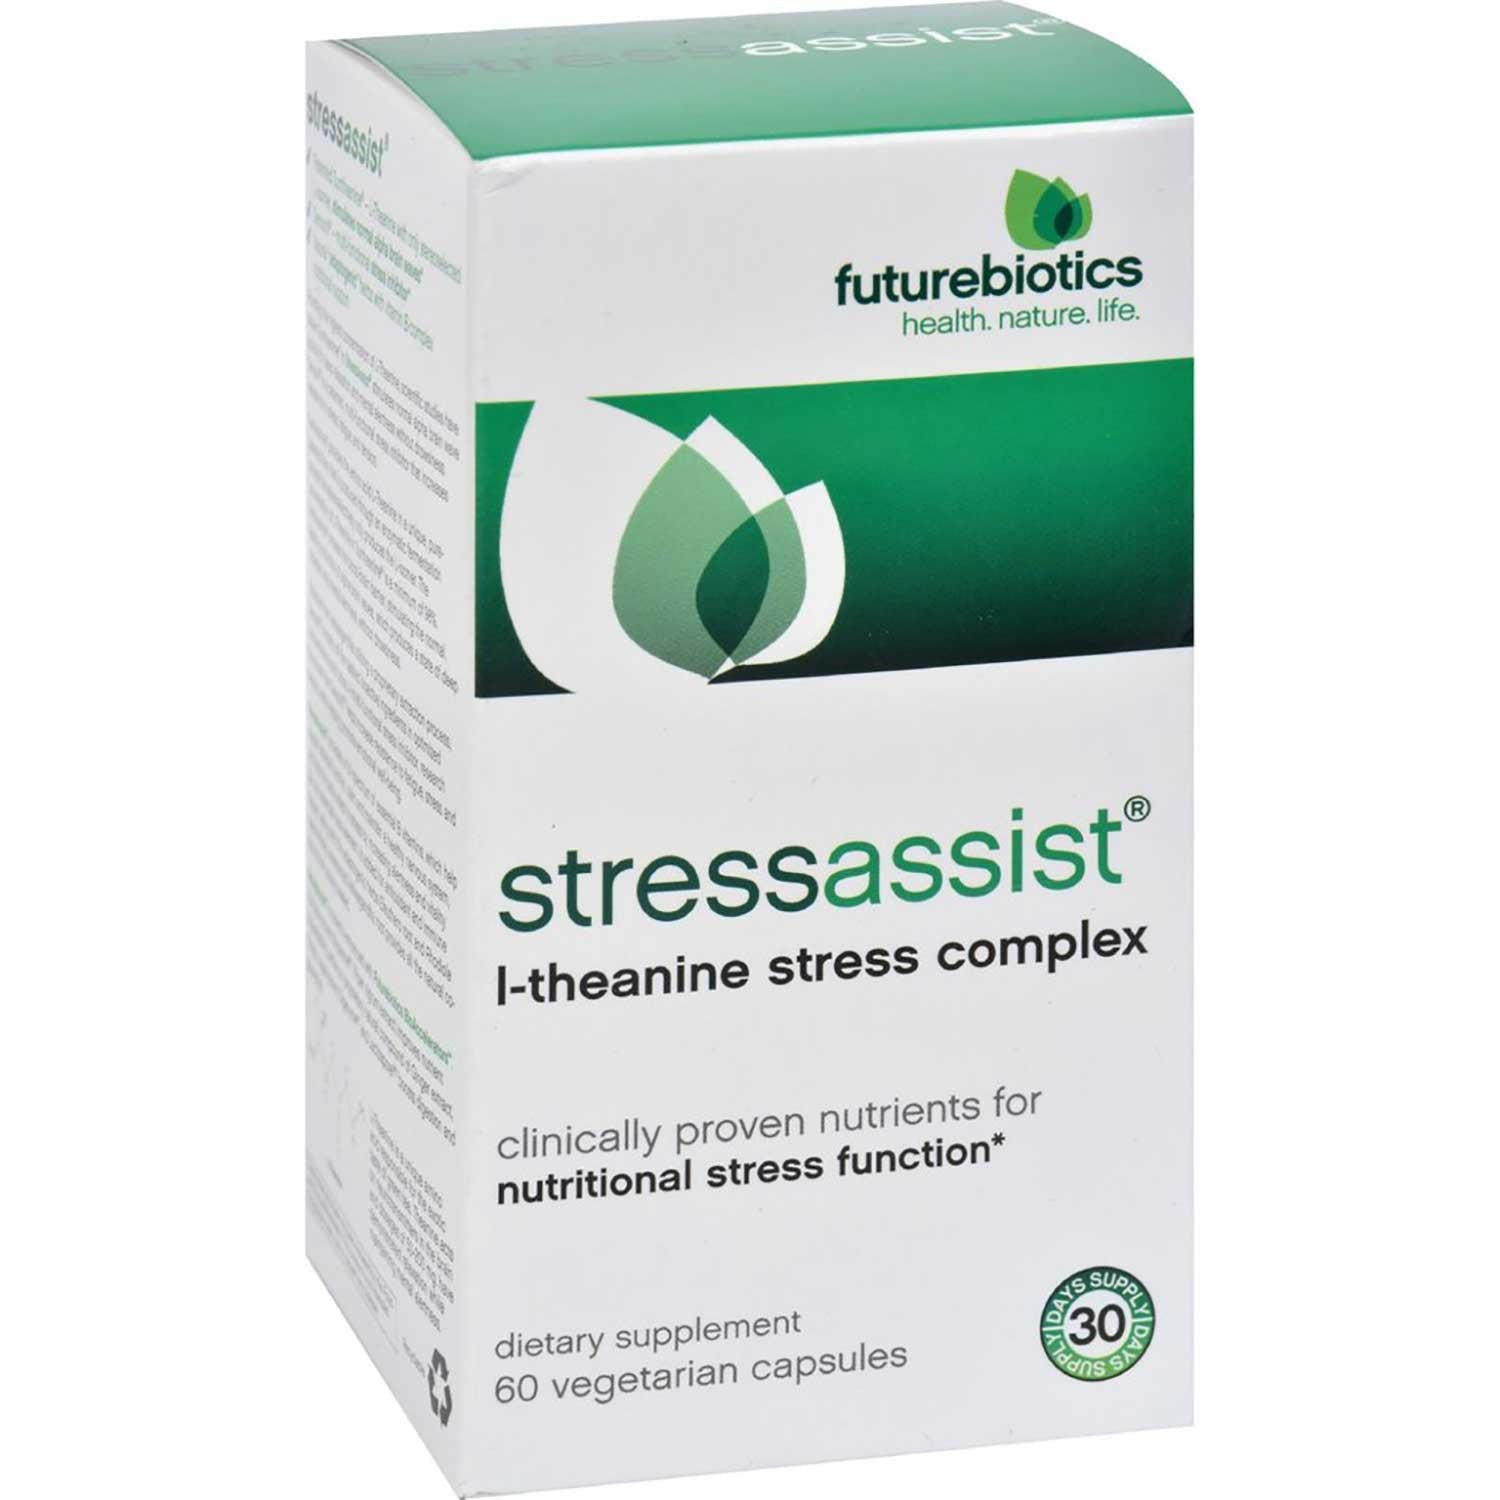 Futurebiotics StressAssist, 60 vcaps.-NaturesWisdom